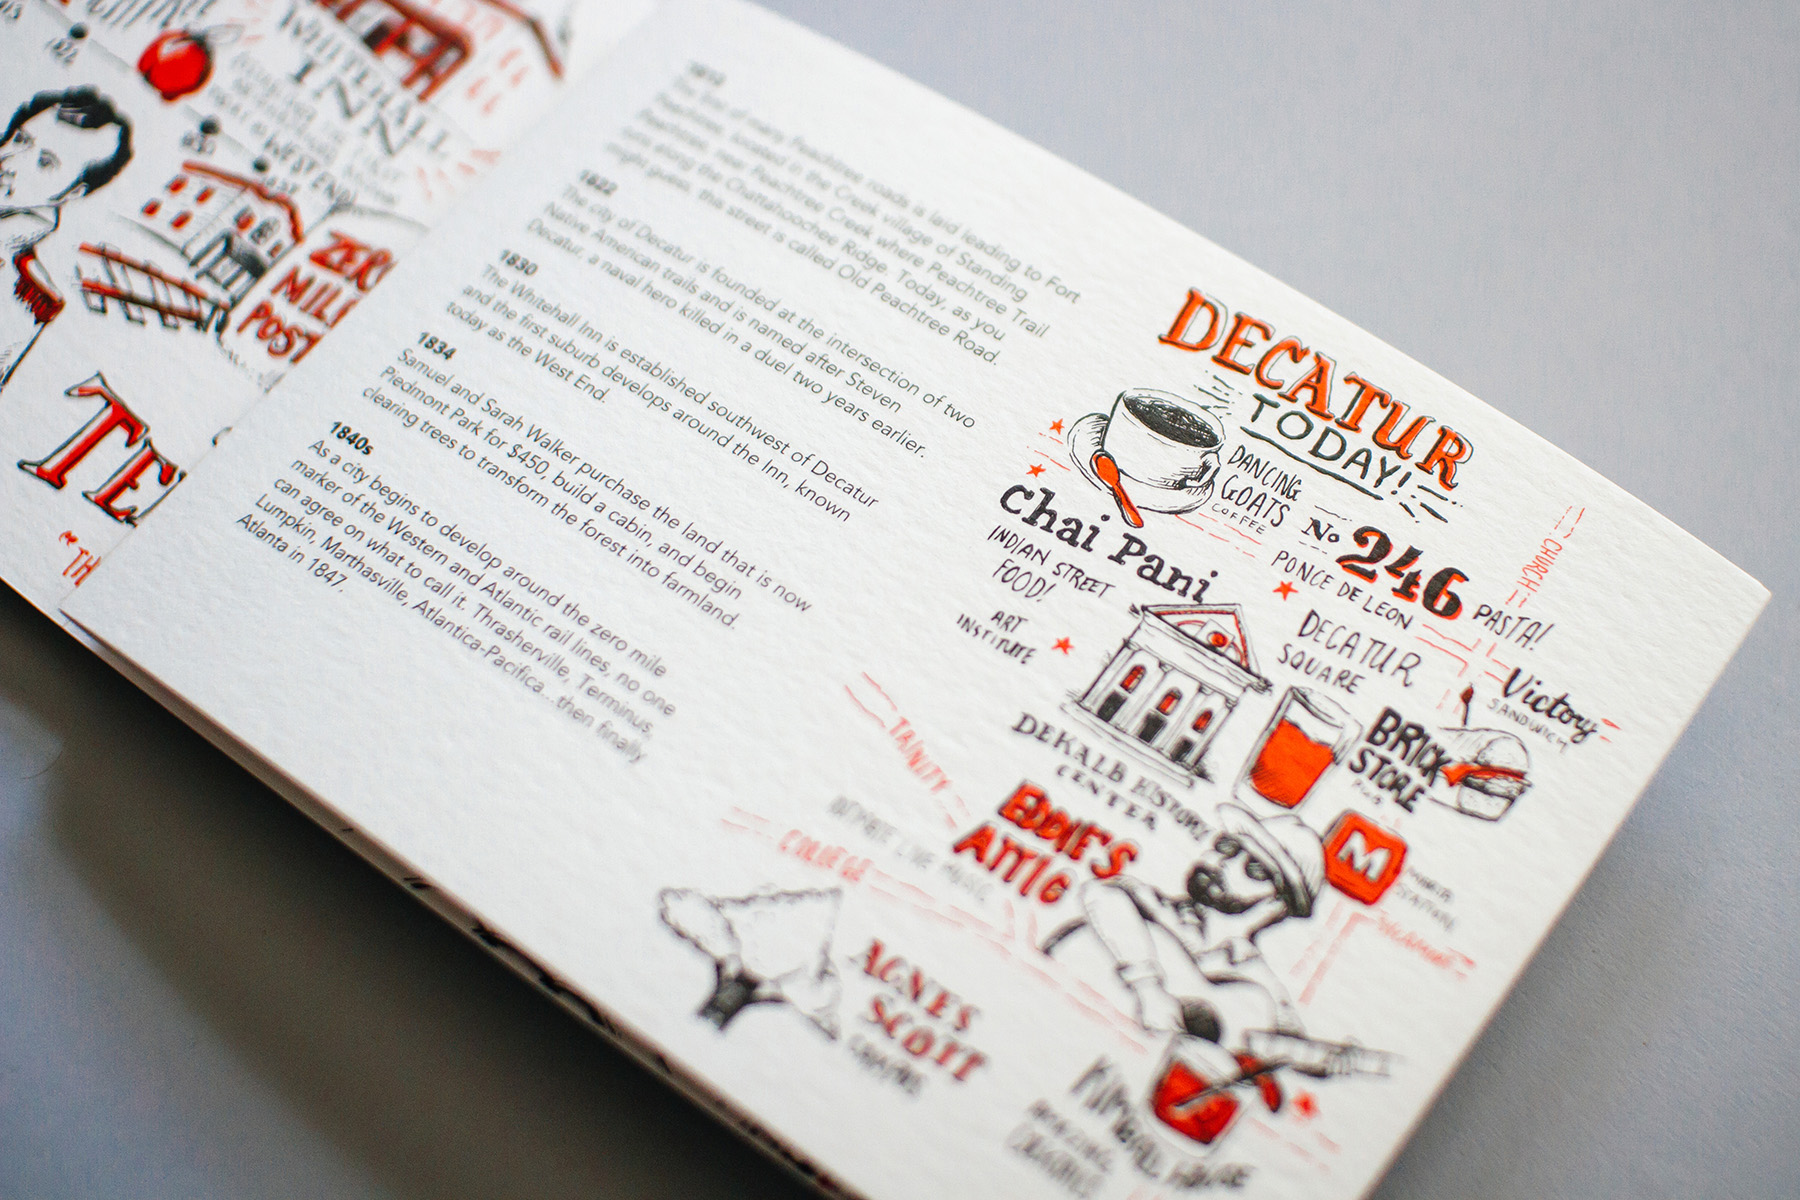 First illustrated timeline panel reveal, with Decatur Today neighborhood city map, hand drawn and illustrated for Neenah Paper.